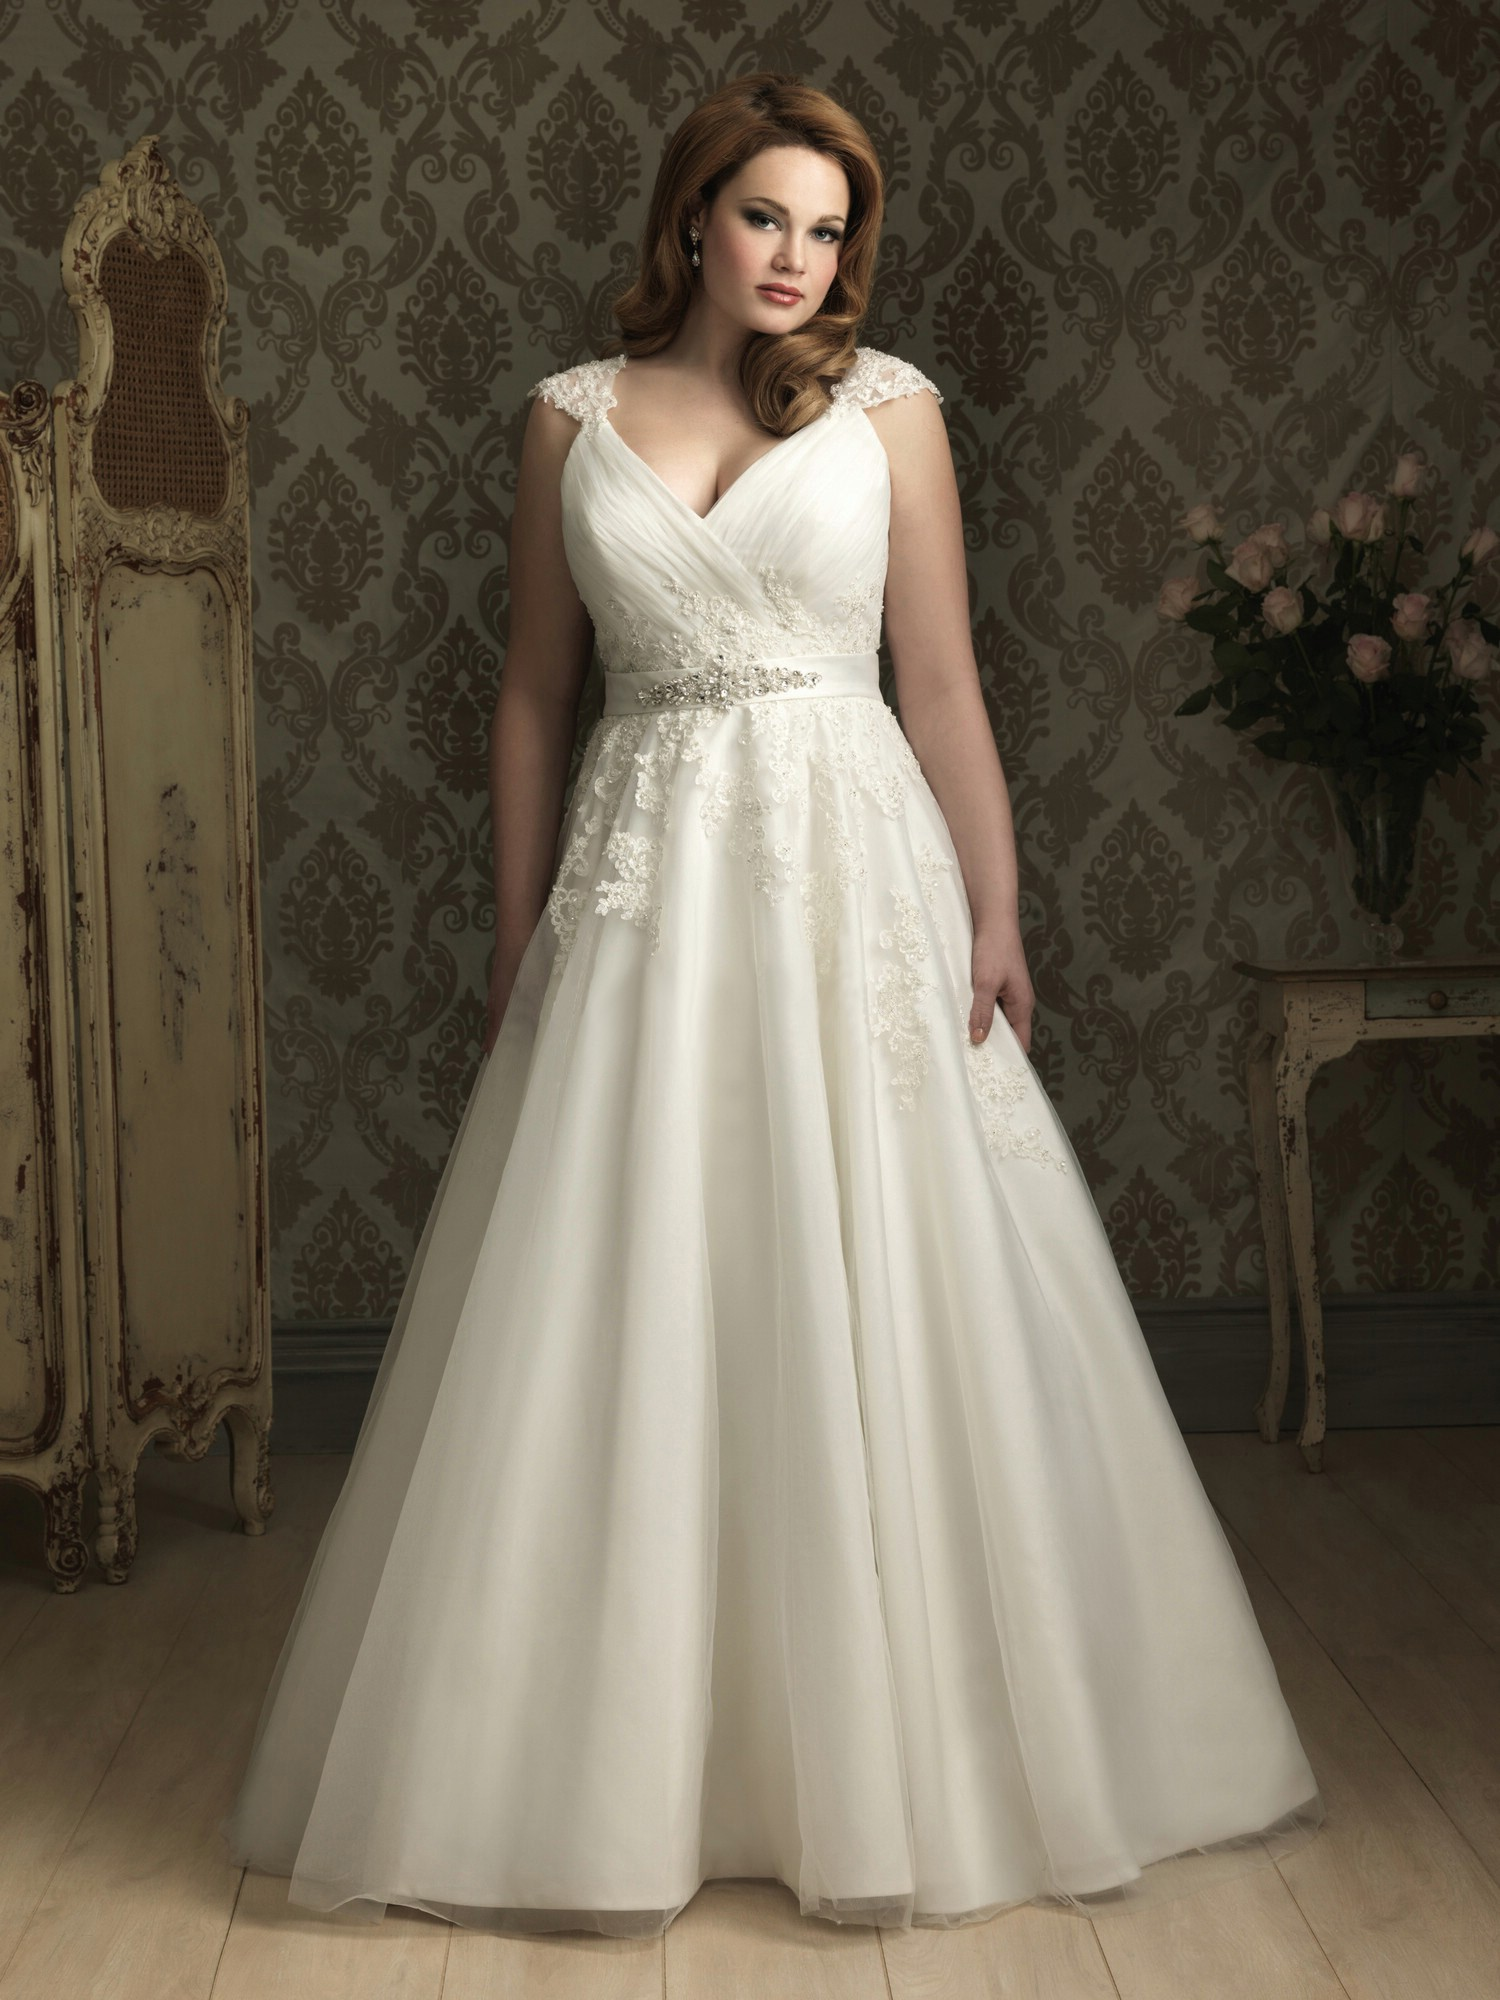 Plus size wedding dresses ball gown for Wedding dresses for larger sizes